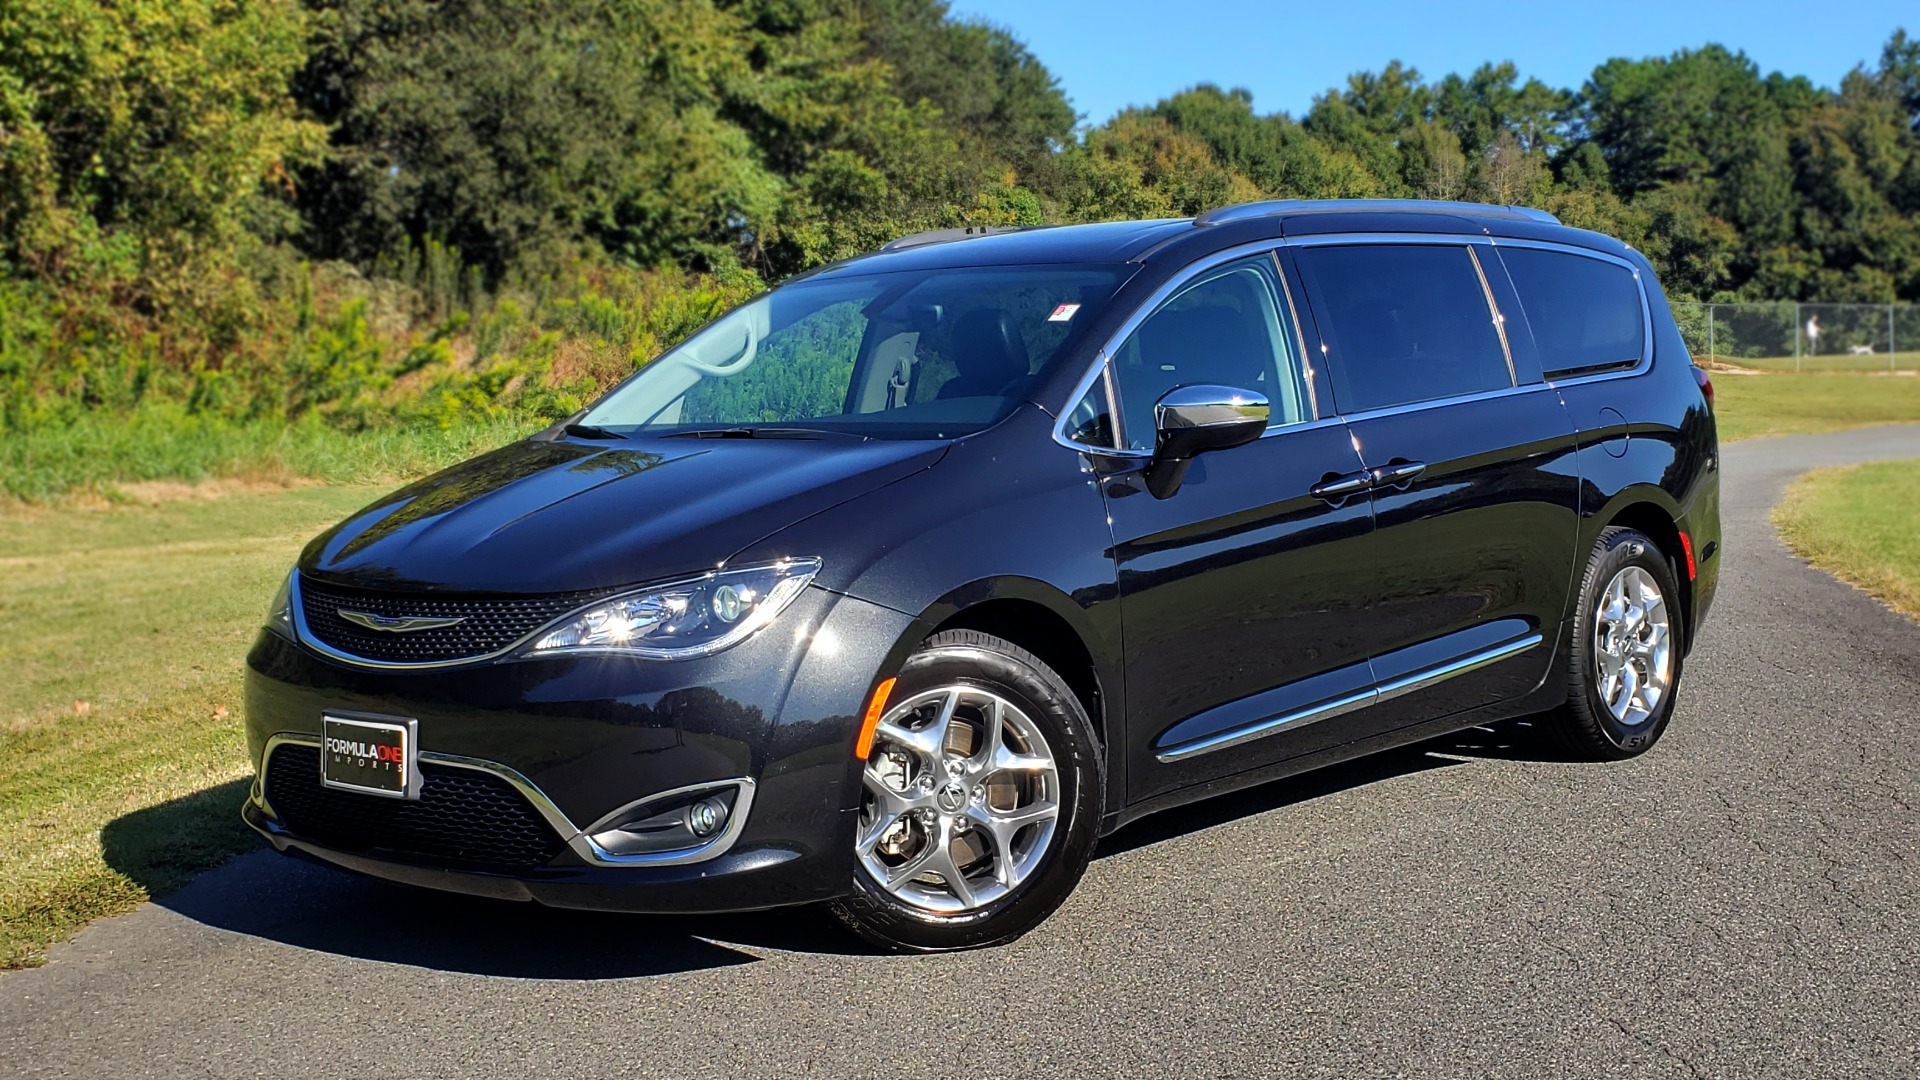 Used 2018 Chrysler PACIFICA LIMITED / 3.6L V6 / NAV / PANO-ROOF / 3-ROWS / REARVIEW for sale Sold at Formula Imports in Charlotte NC 28227 1